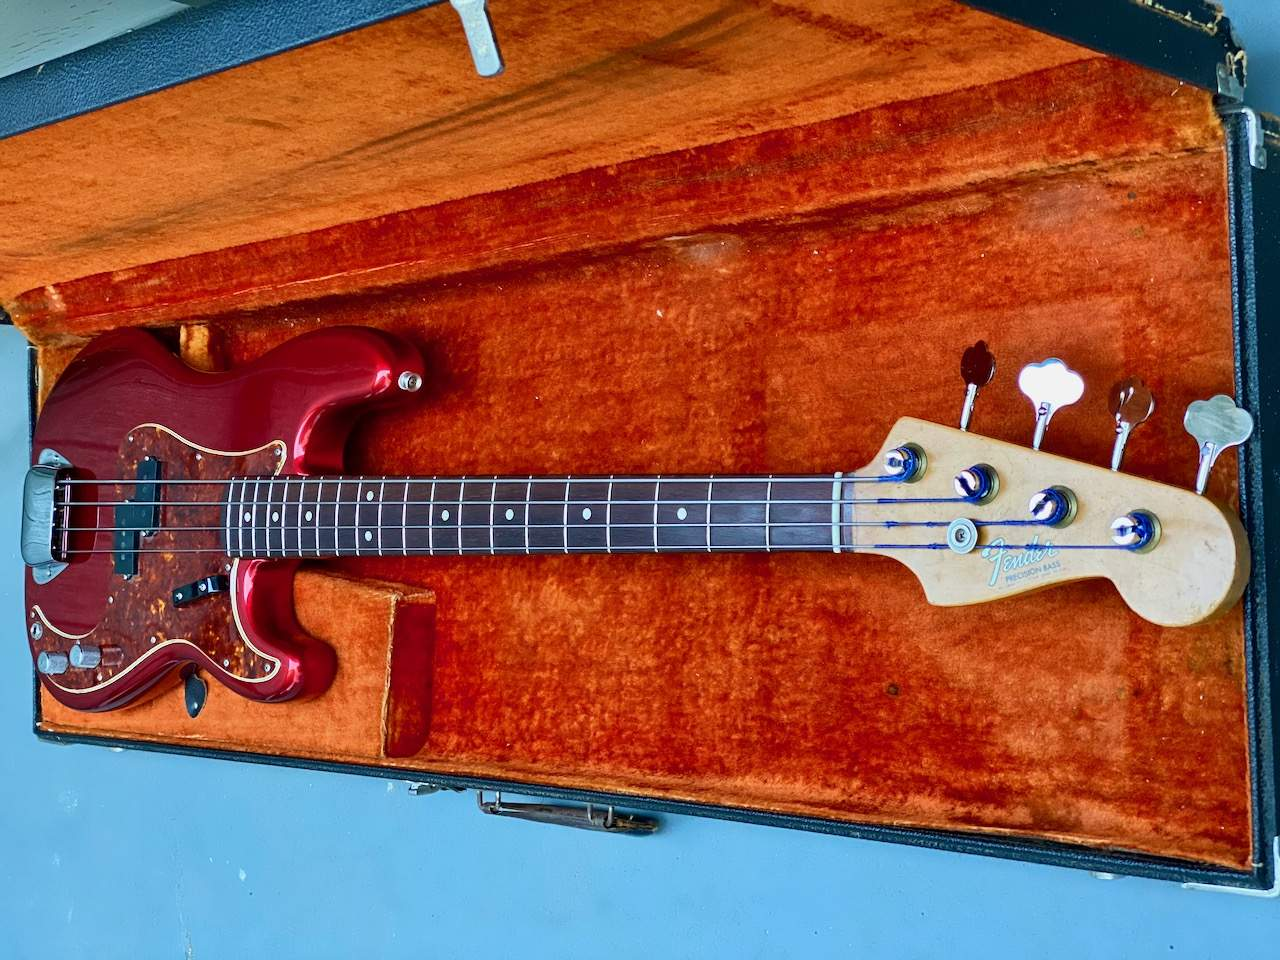 1965 Fender Precision Candy Apple Red - 49.jpeg